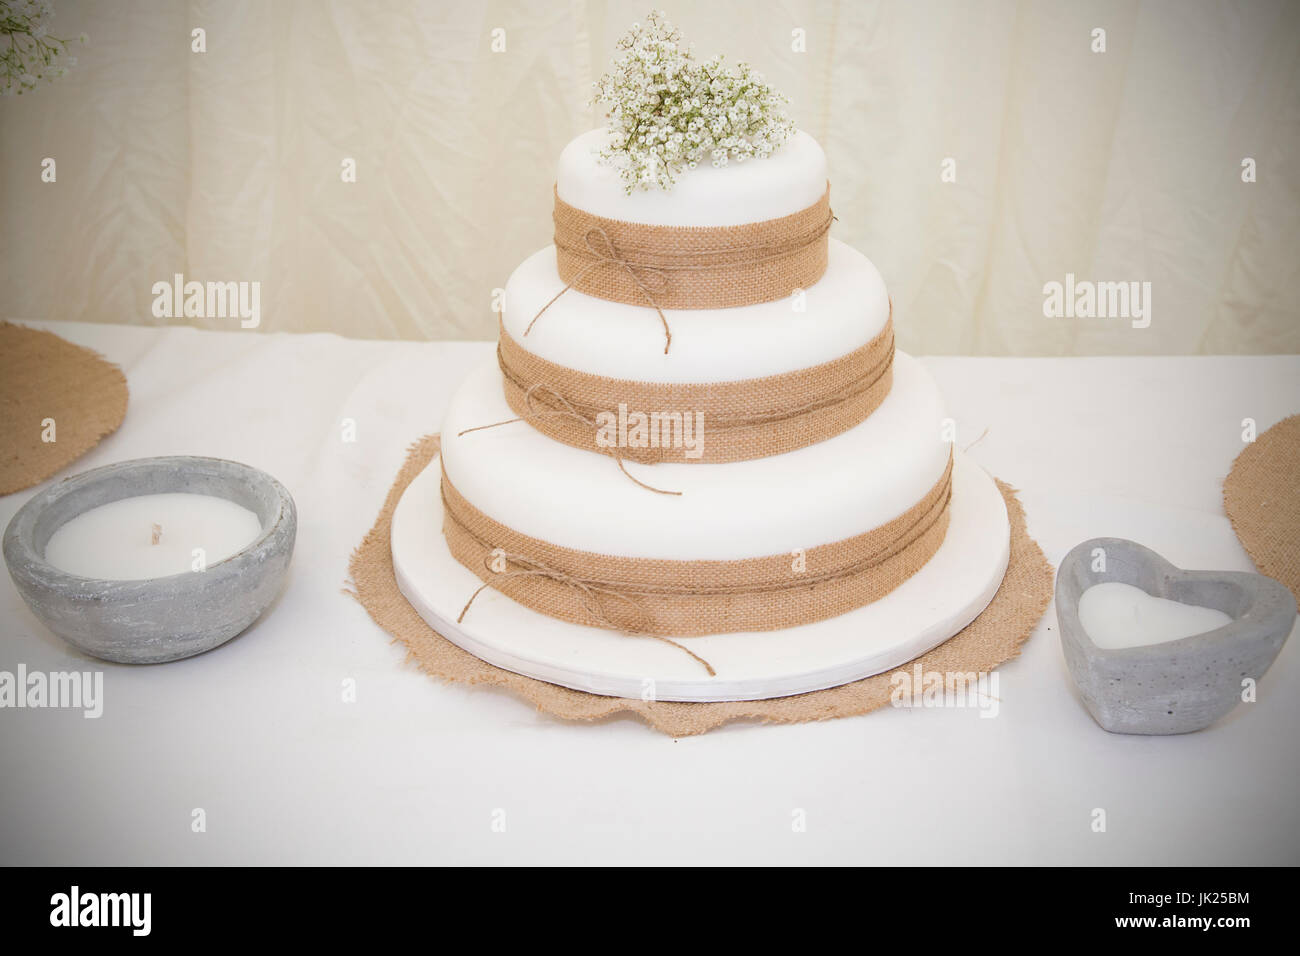 Simple White Wedding Cake with hessian fabric decoration and a white ...